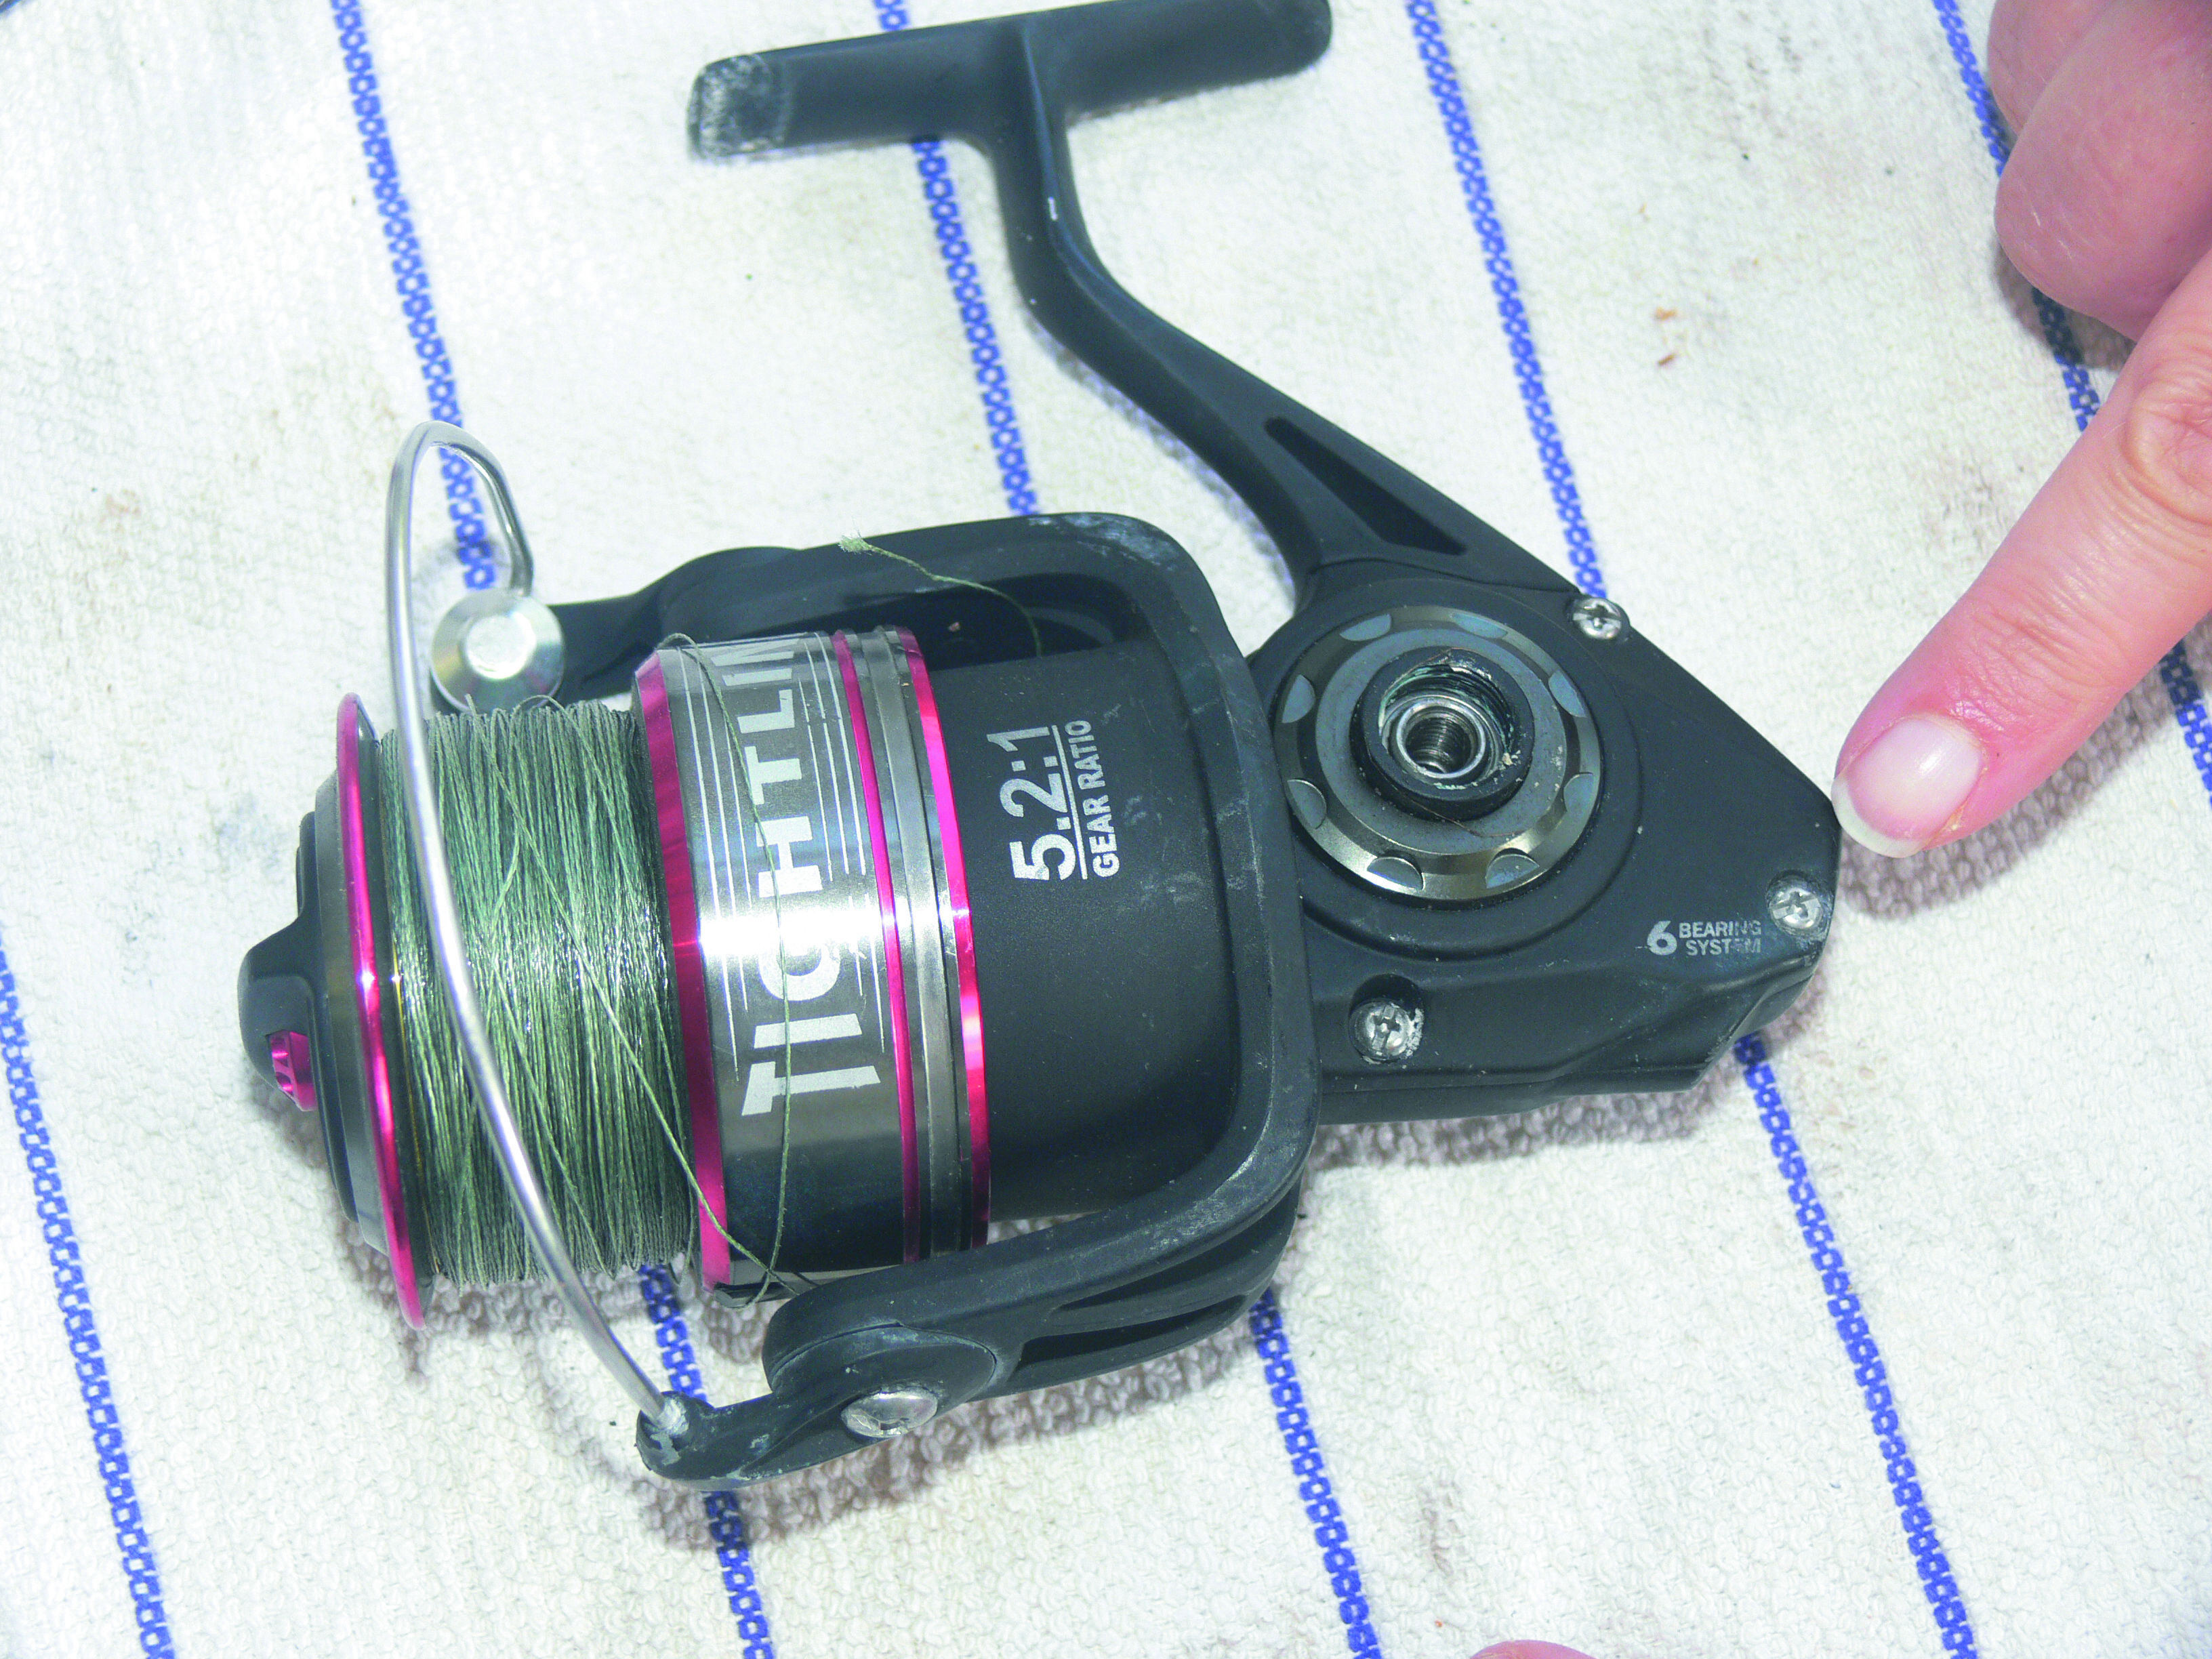 Step three to maintain your spinning reel